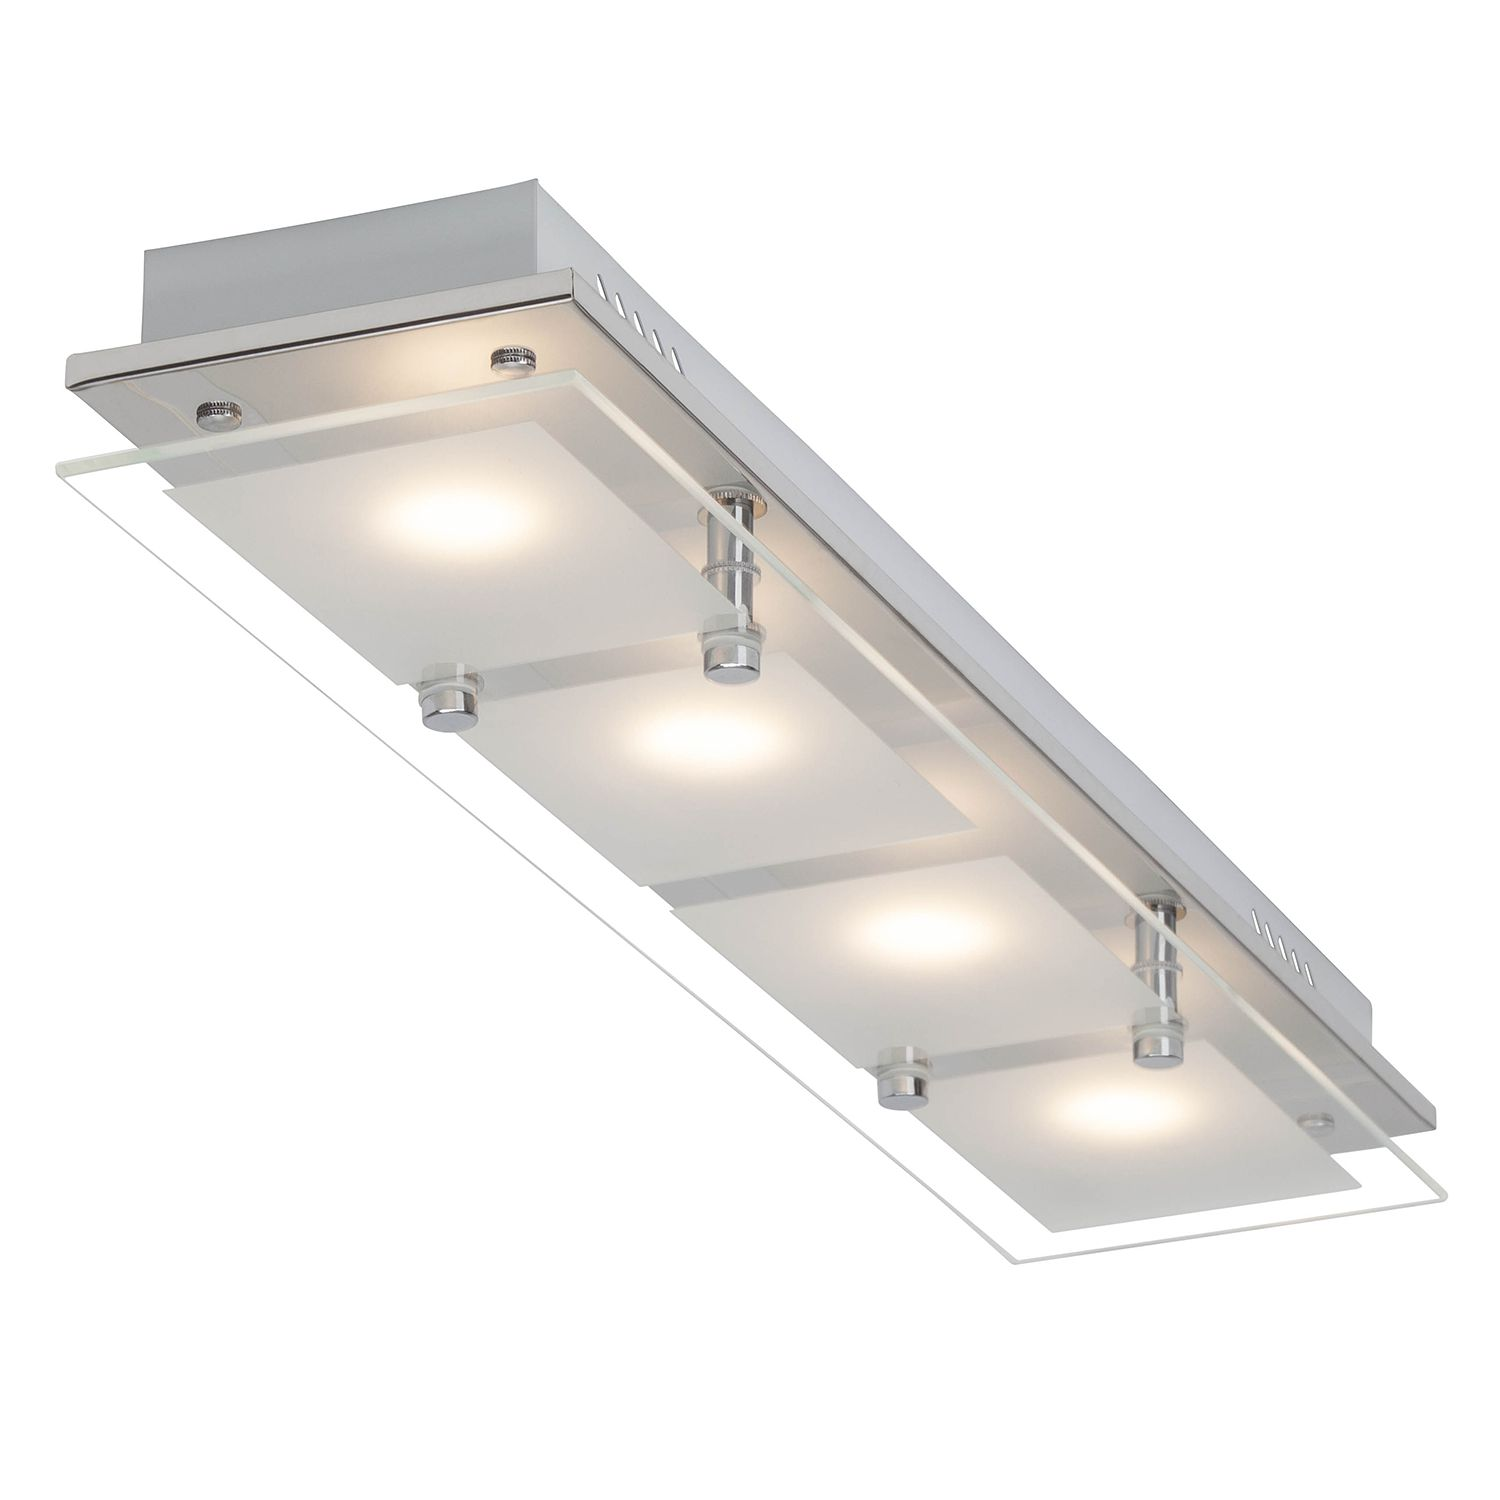 energie  A+, LED-plafondlamp World II - glas/staal - 4, Brilliant